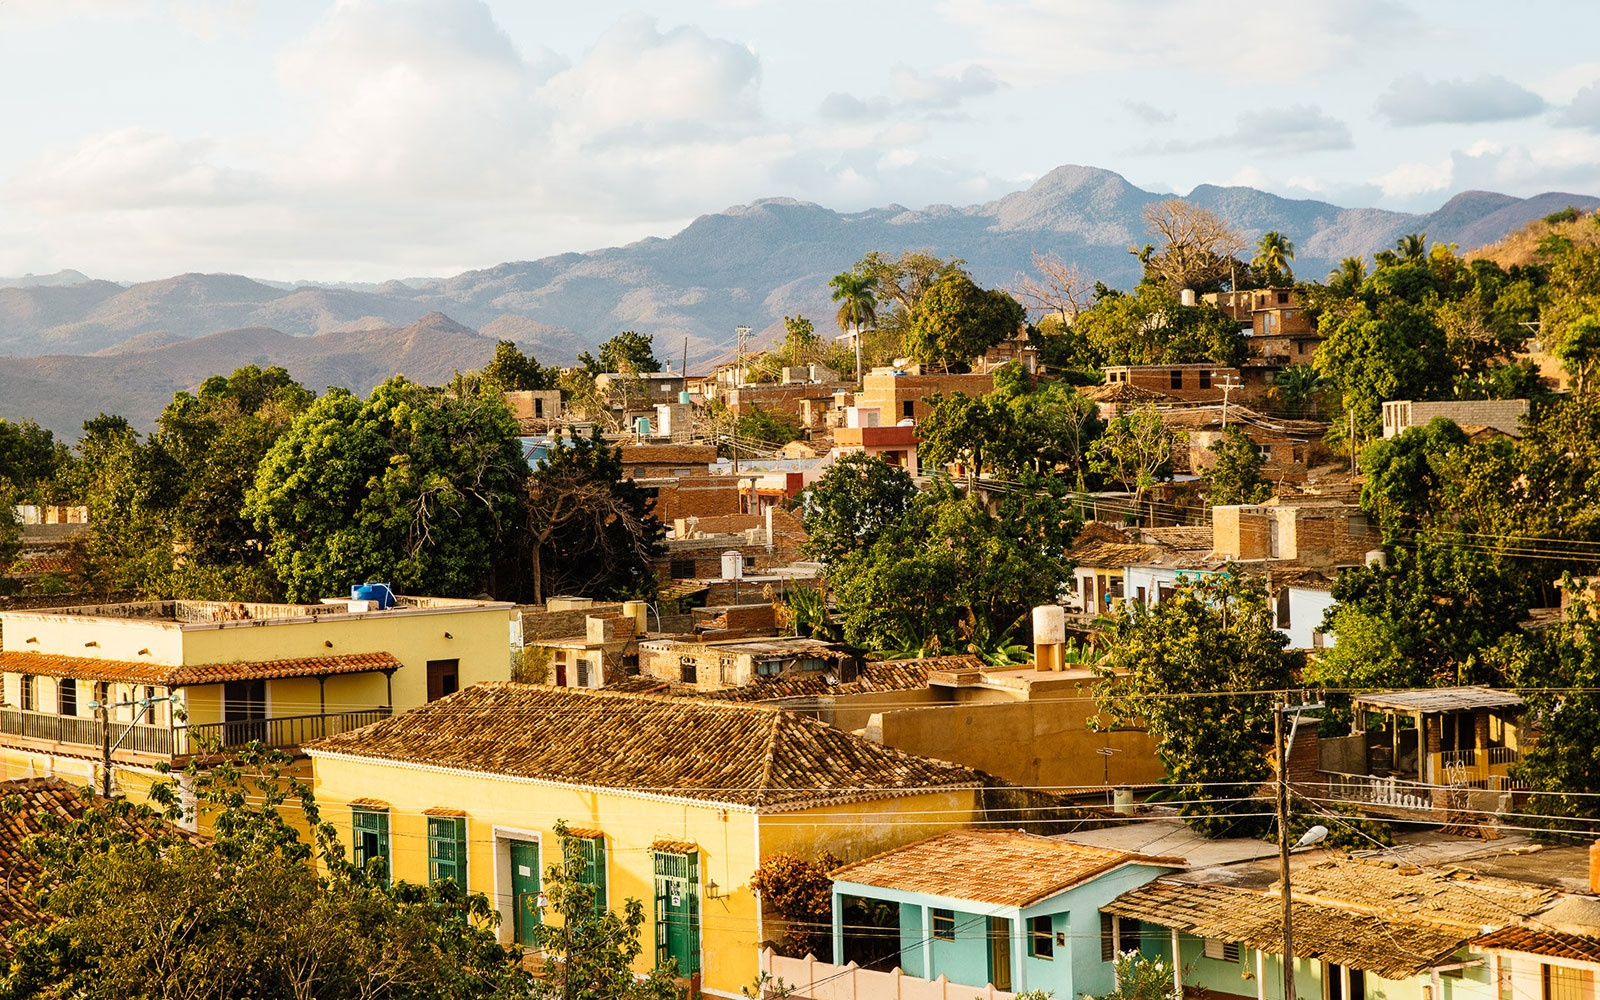 In Trinidad: Seek Out a Rooftop View